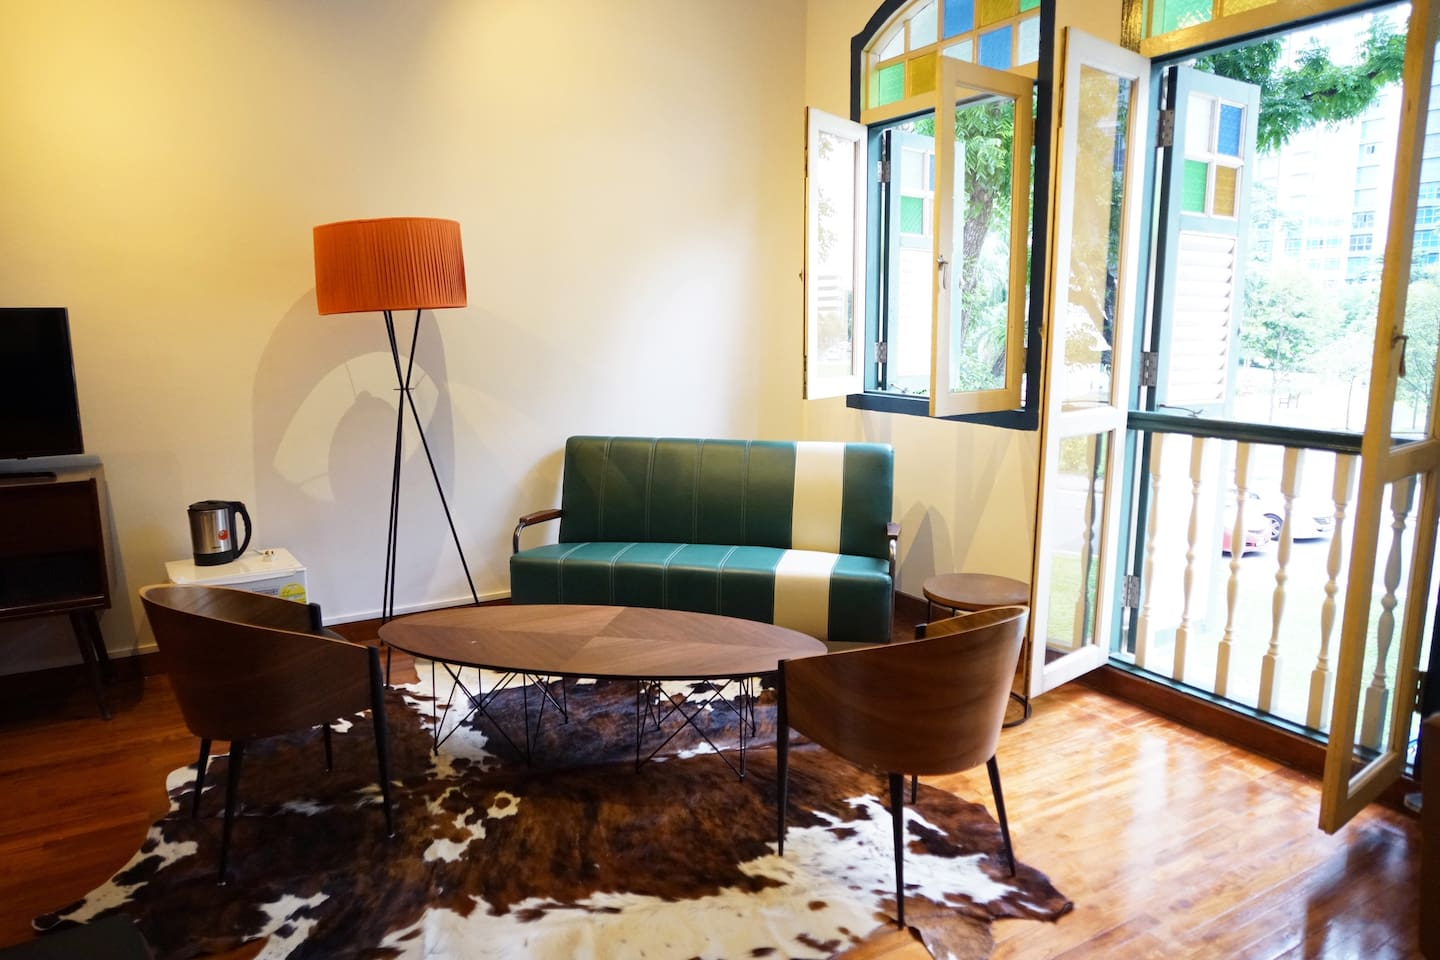 Our laidback lounge seater area complete with a mini-fridge for ice cold drinks and casual chilling by the large patio windows..